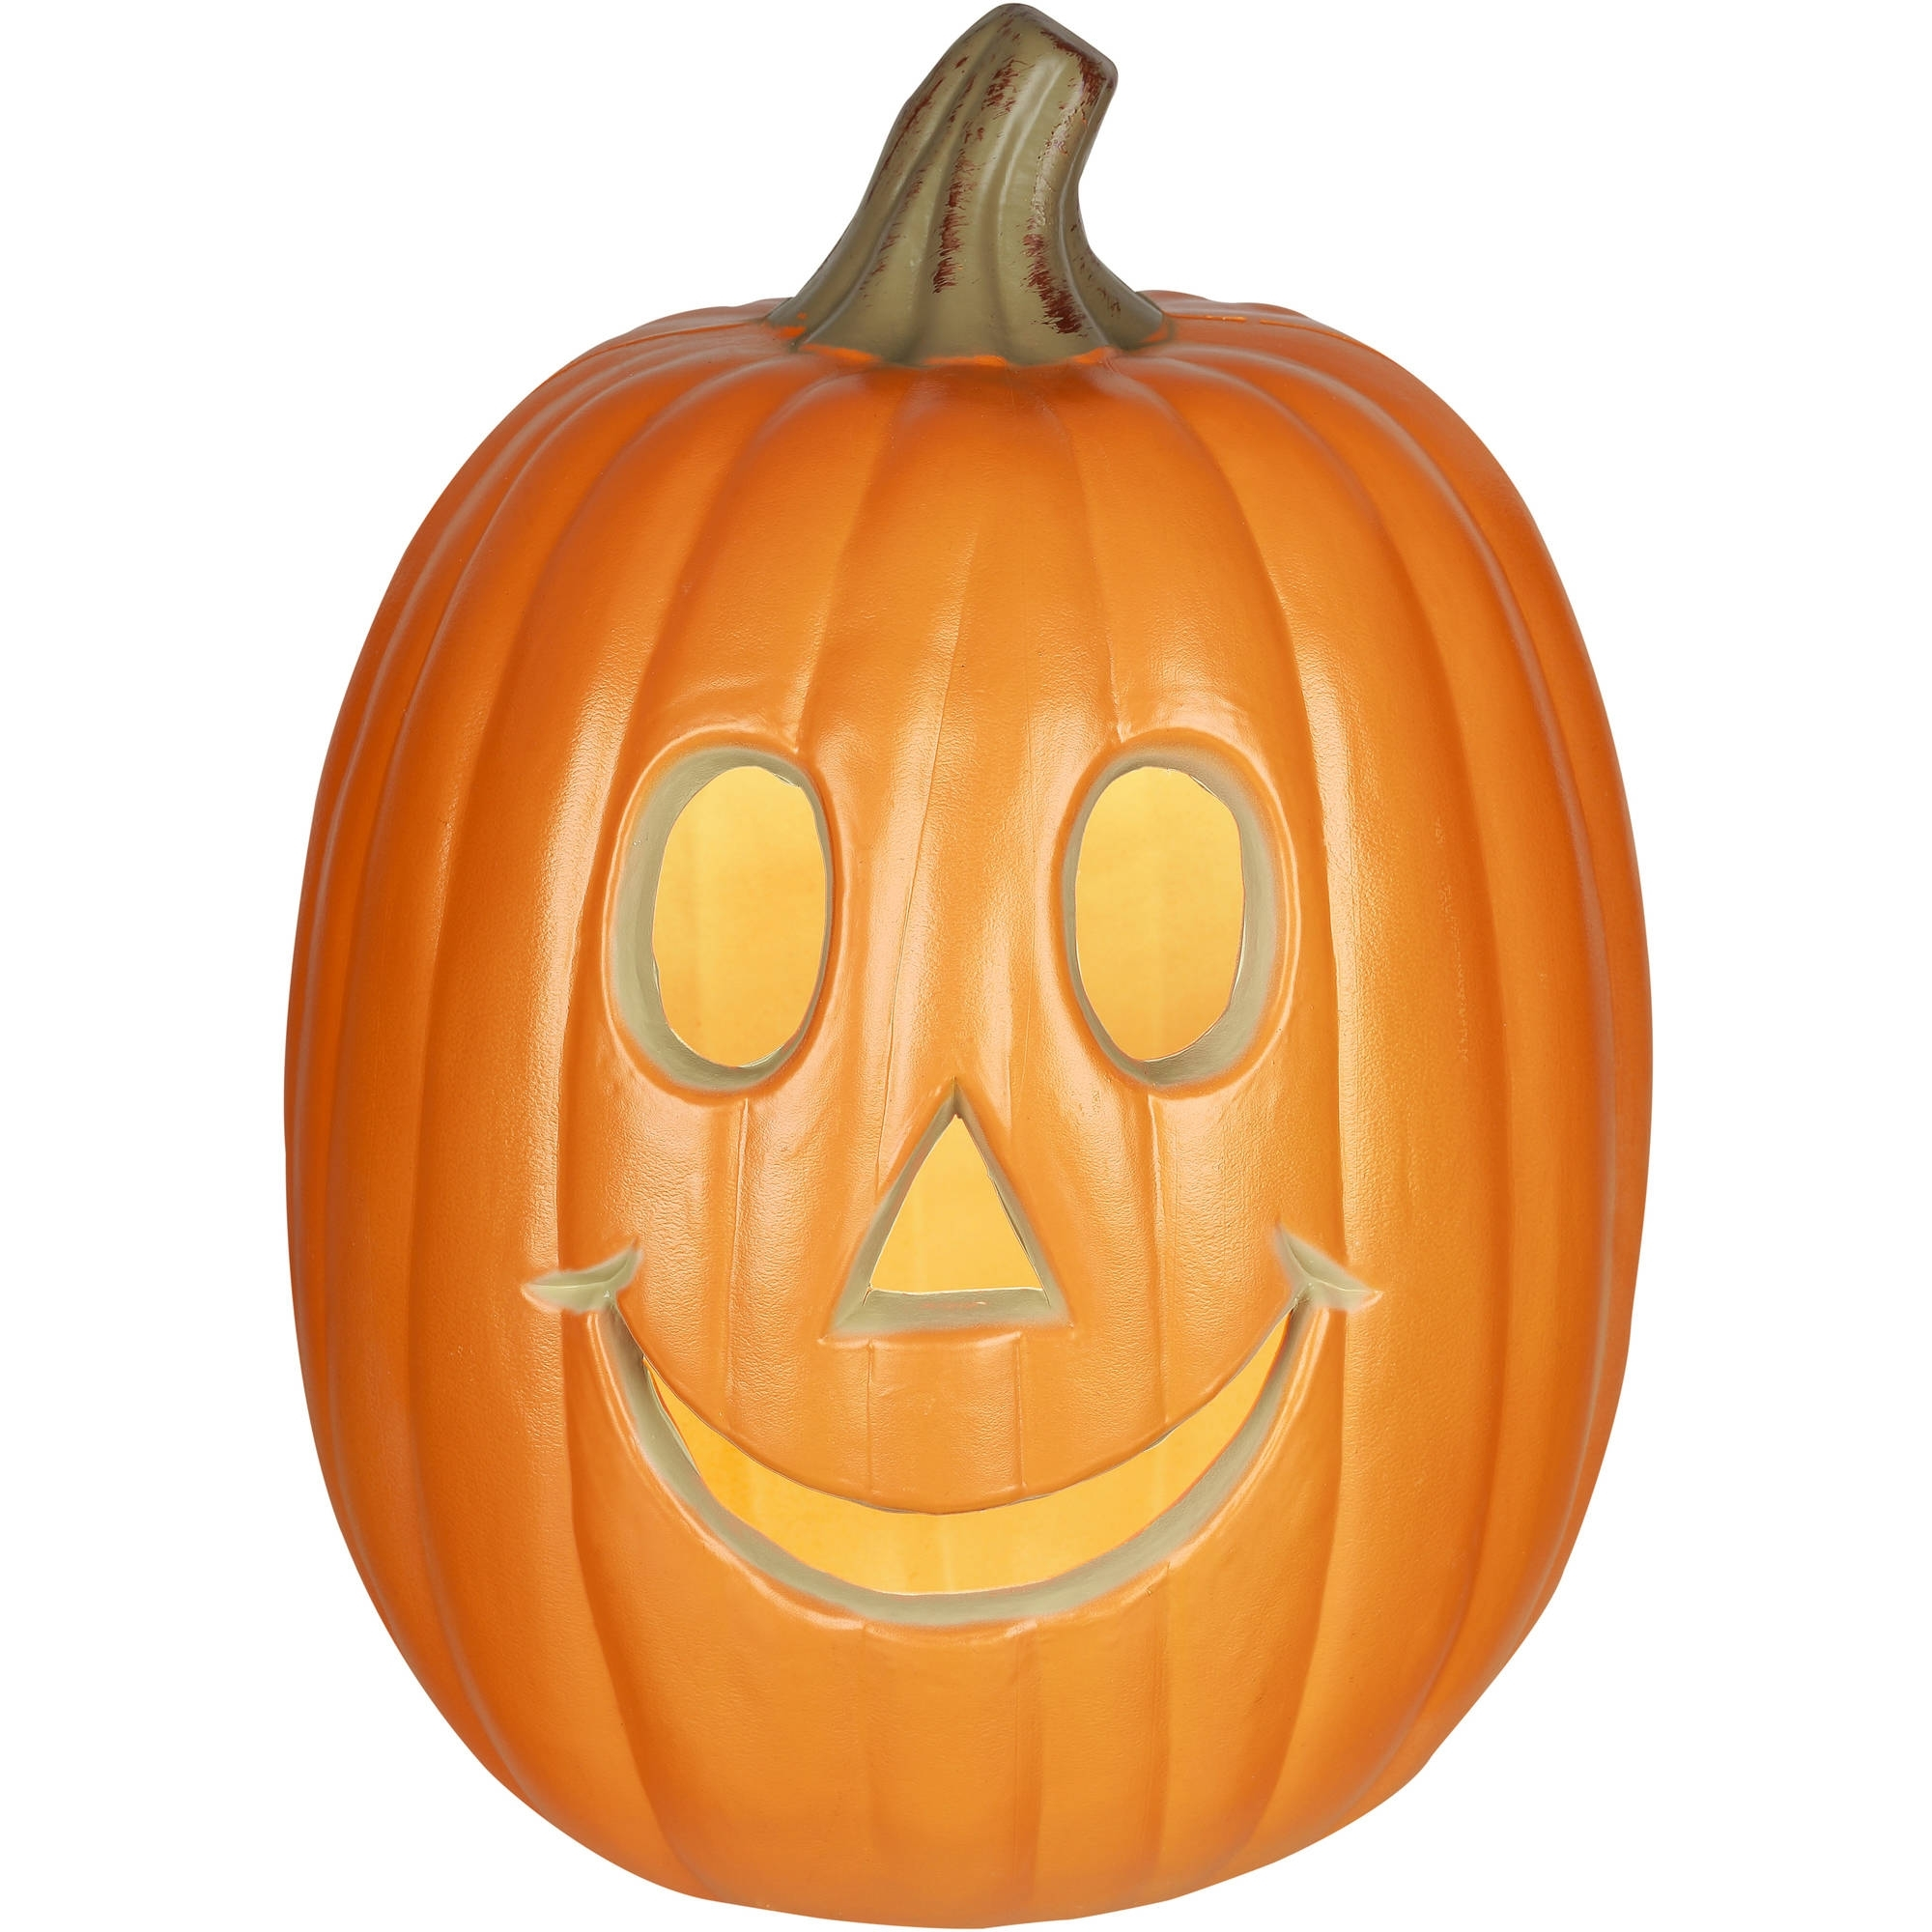 "Gemmy Lighted Jack O Lantern 12"" Happy Pumpkin Halloween Decoration Intended For Most Popular Outdoor Pumpkin Lanterns (Gallery 18 of 20)"